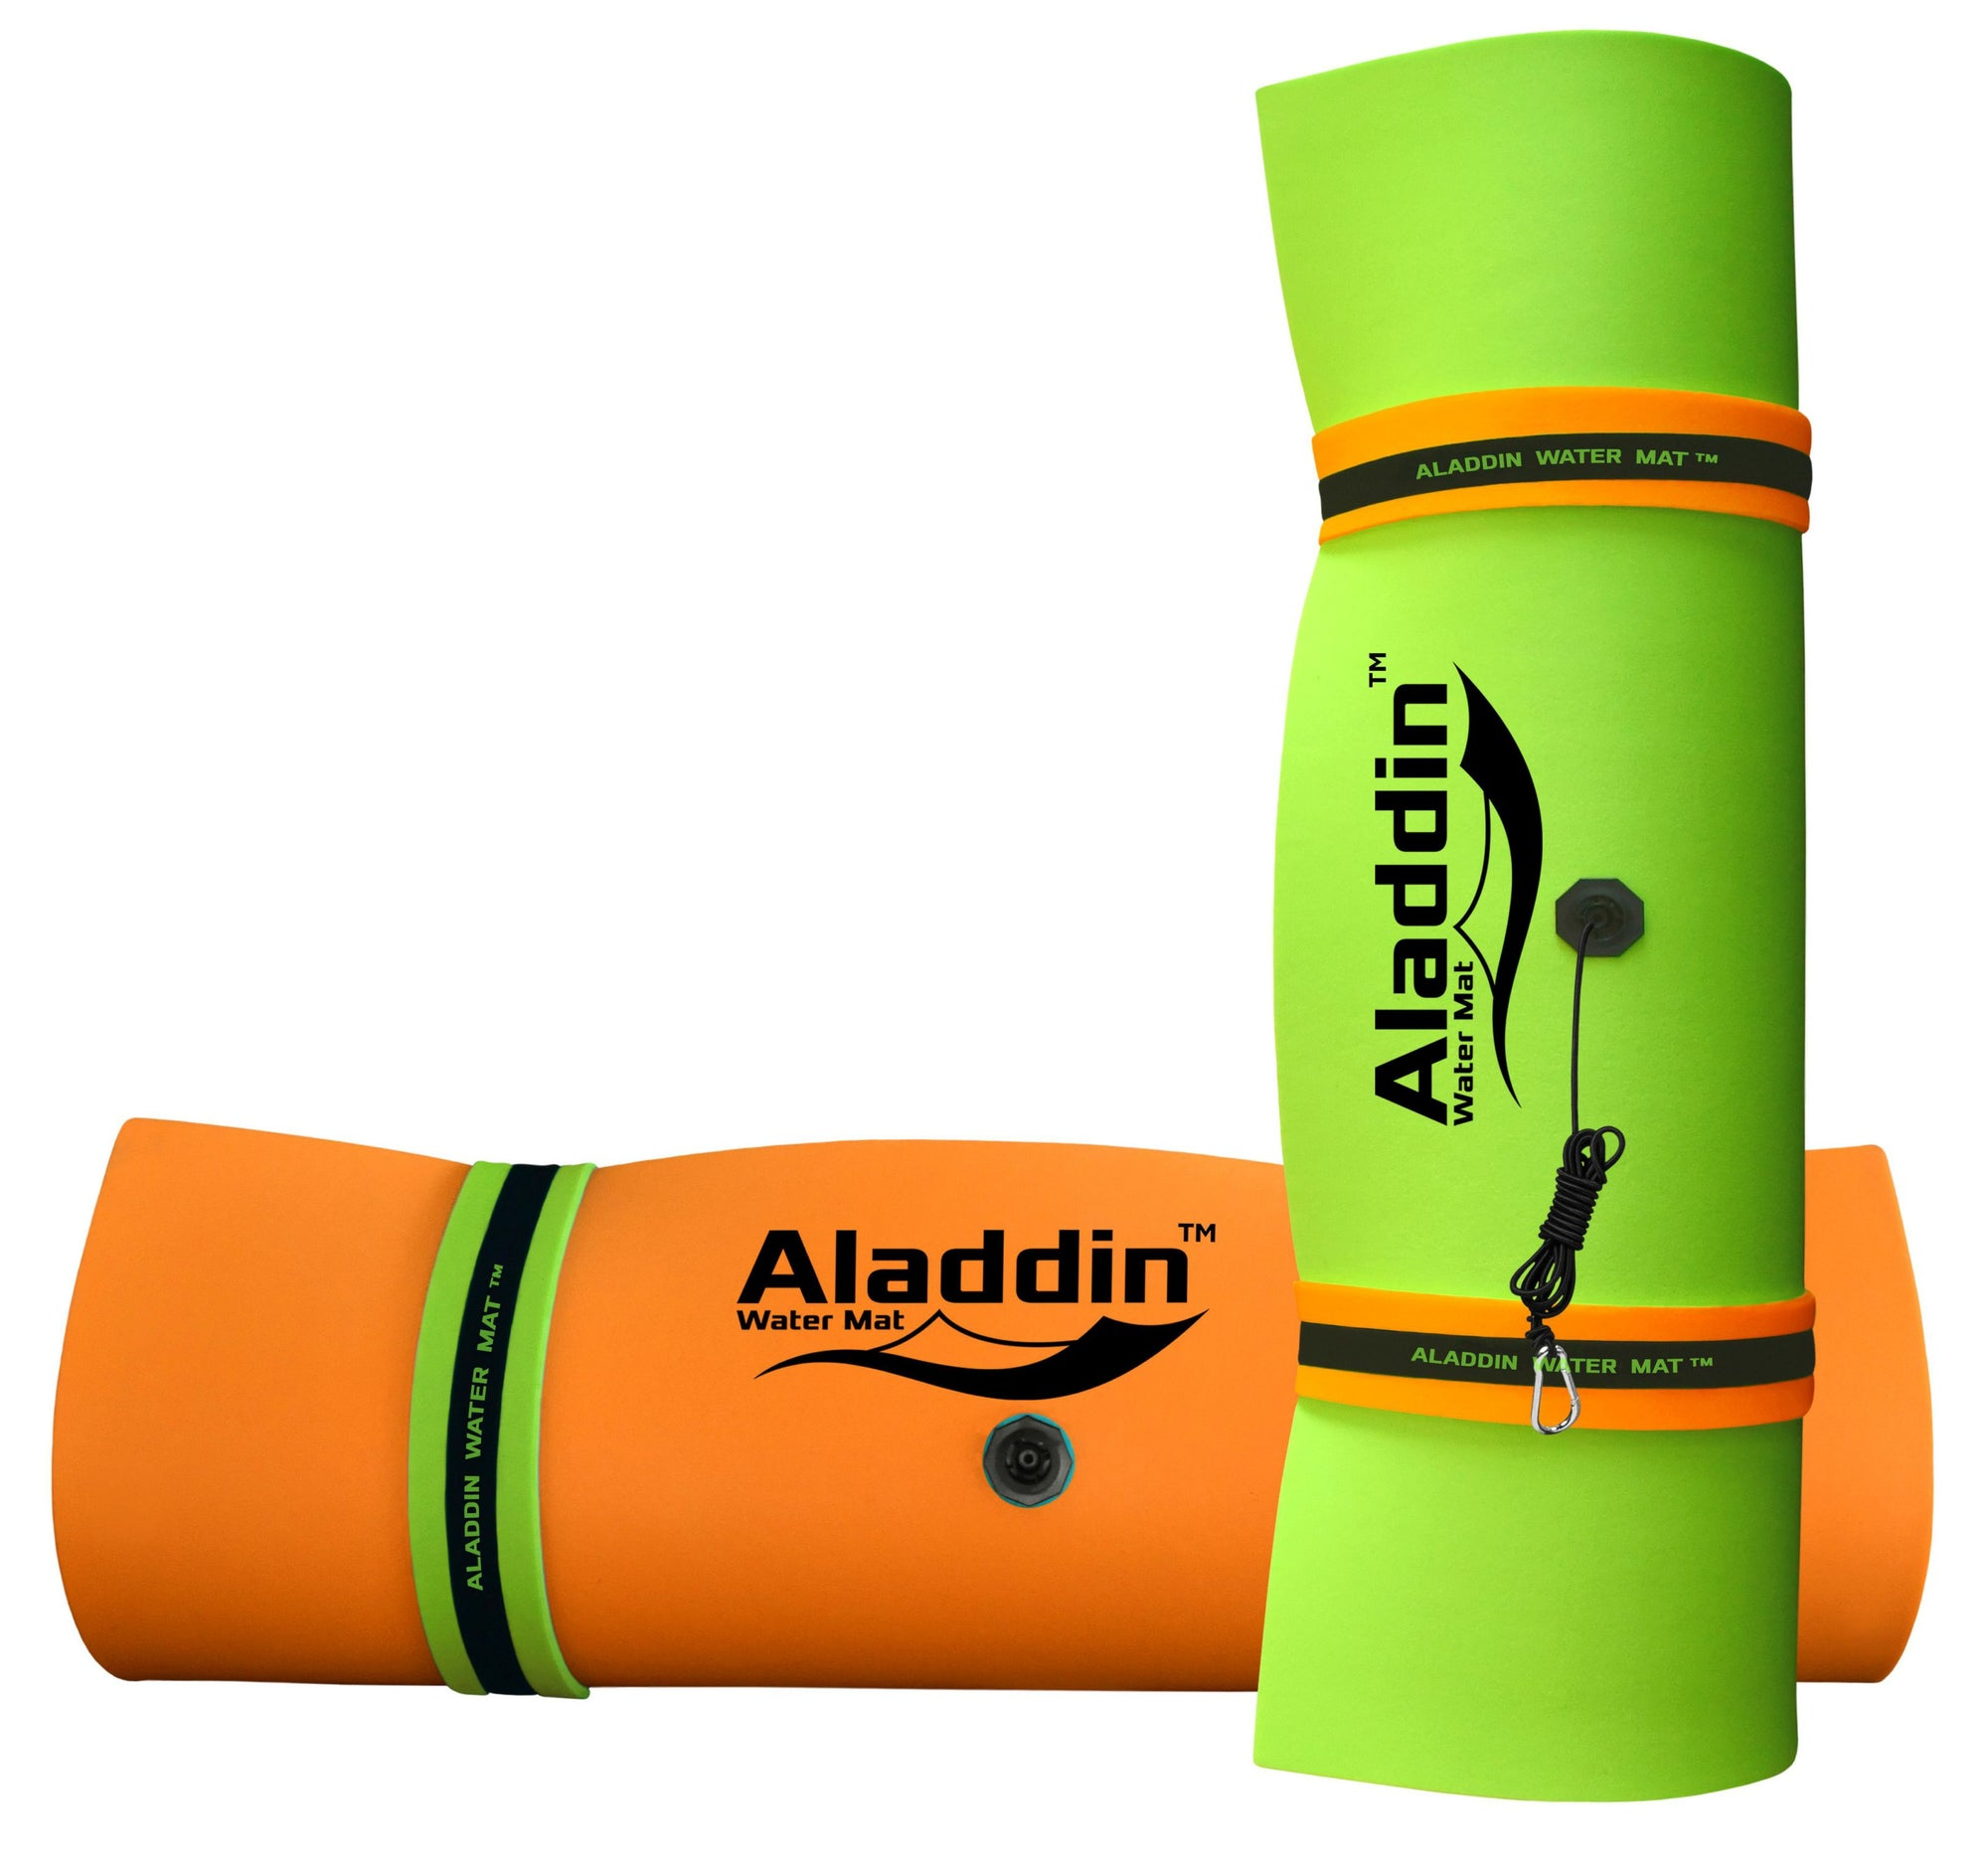 Aladdin Water Mat™ (18x6) Floating Water Mat, Premium Foam (Lime Green/Black/Orange)